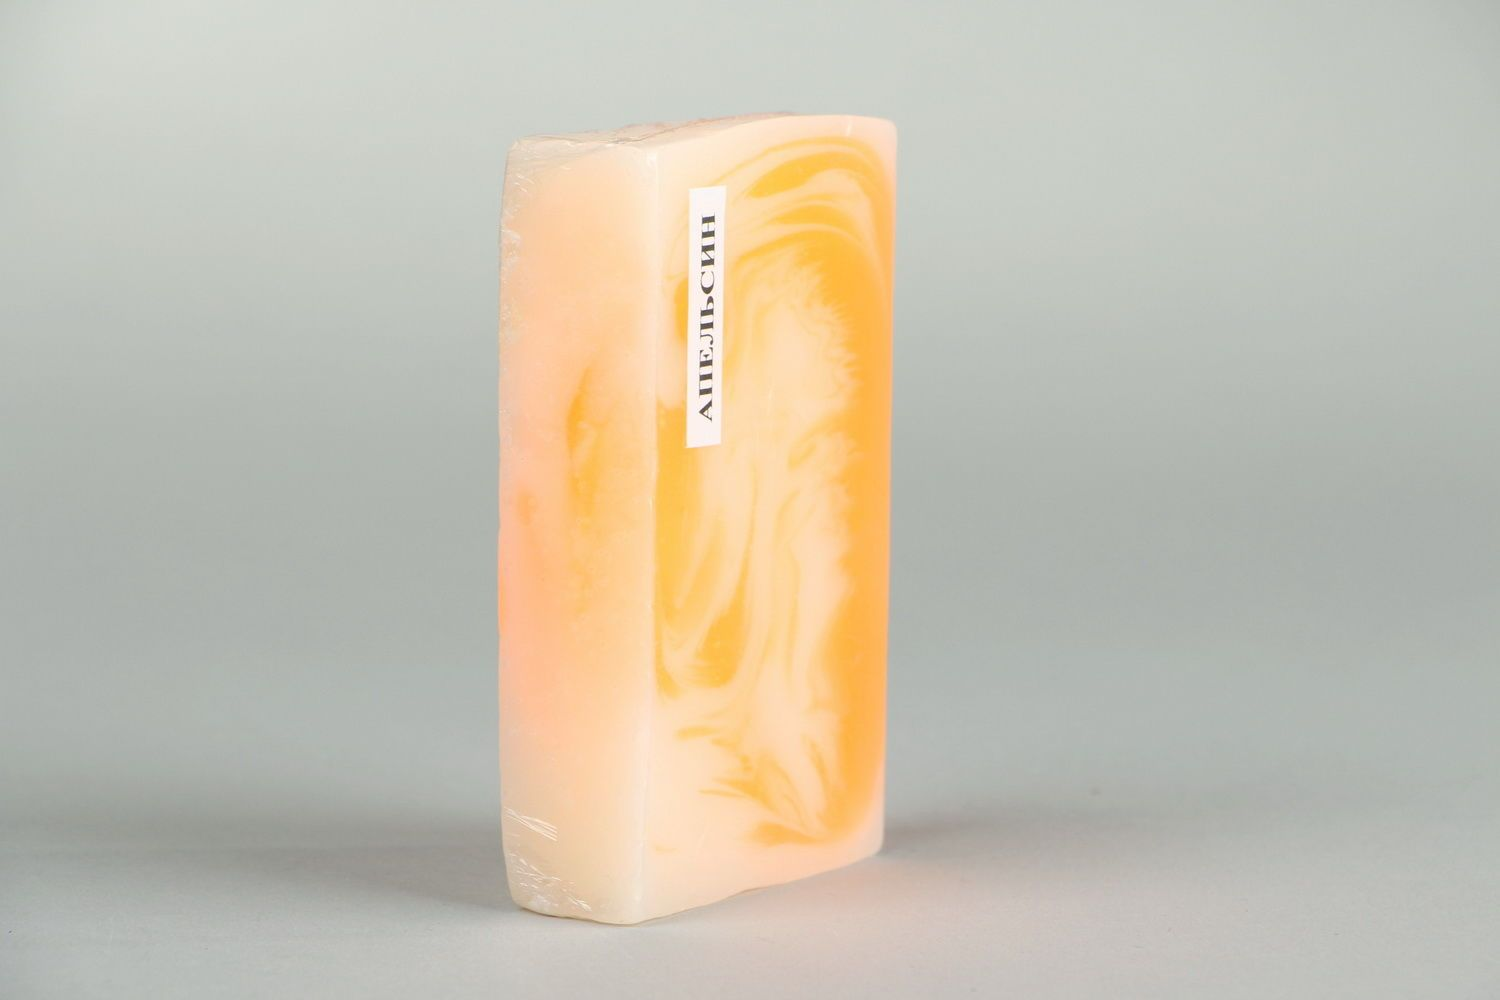 Handmade soap with the scent of oranges photo 3